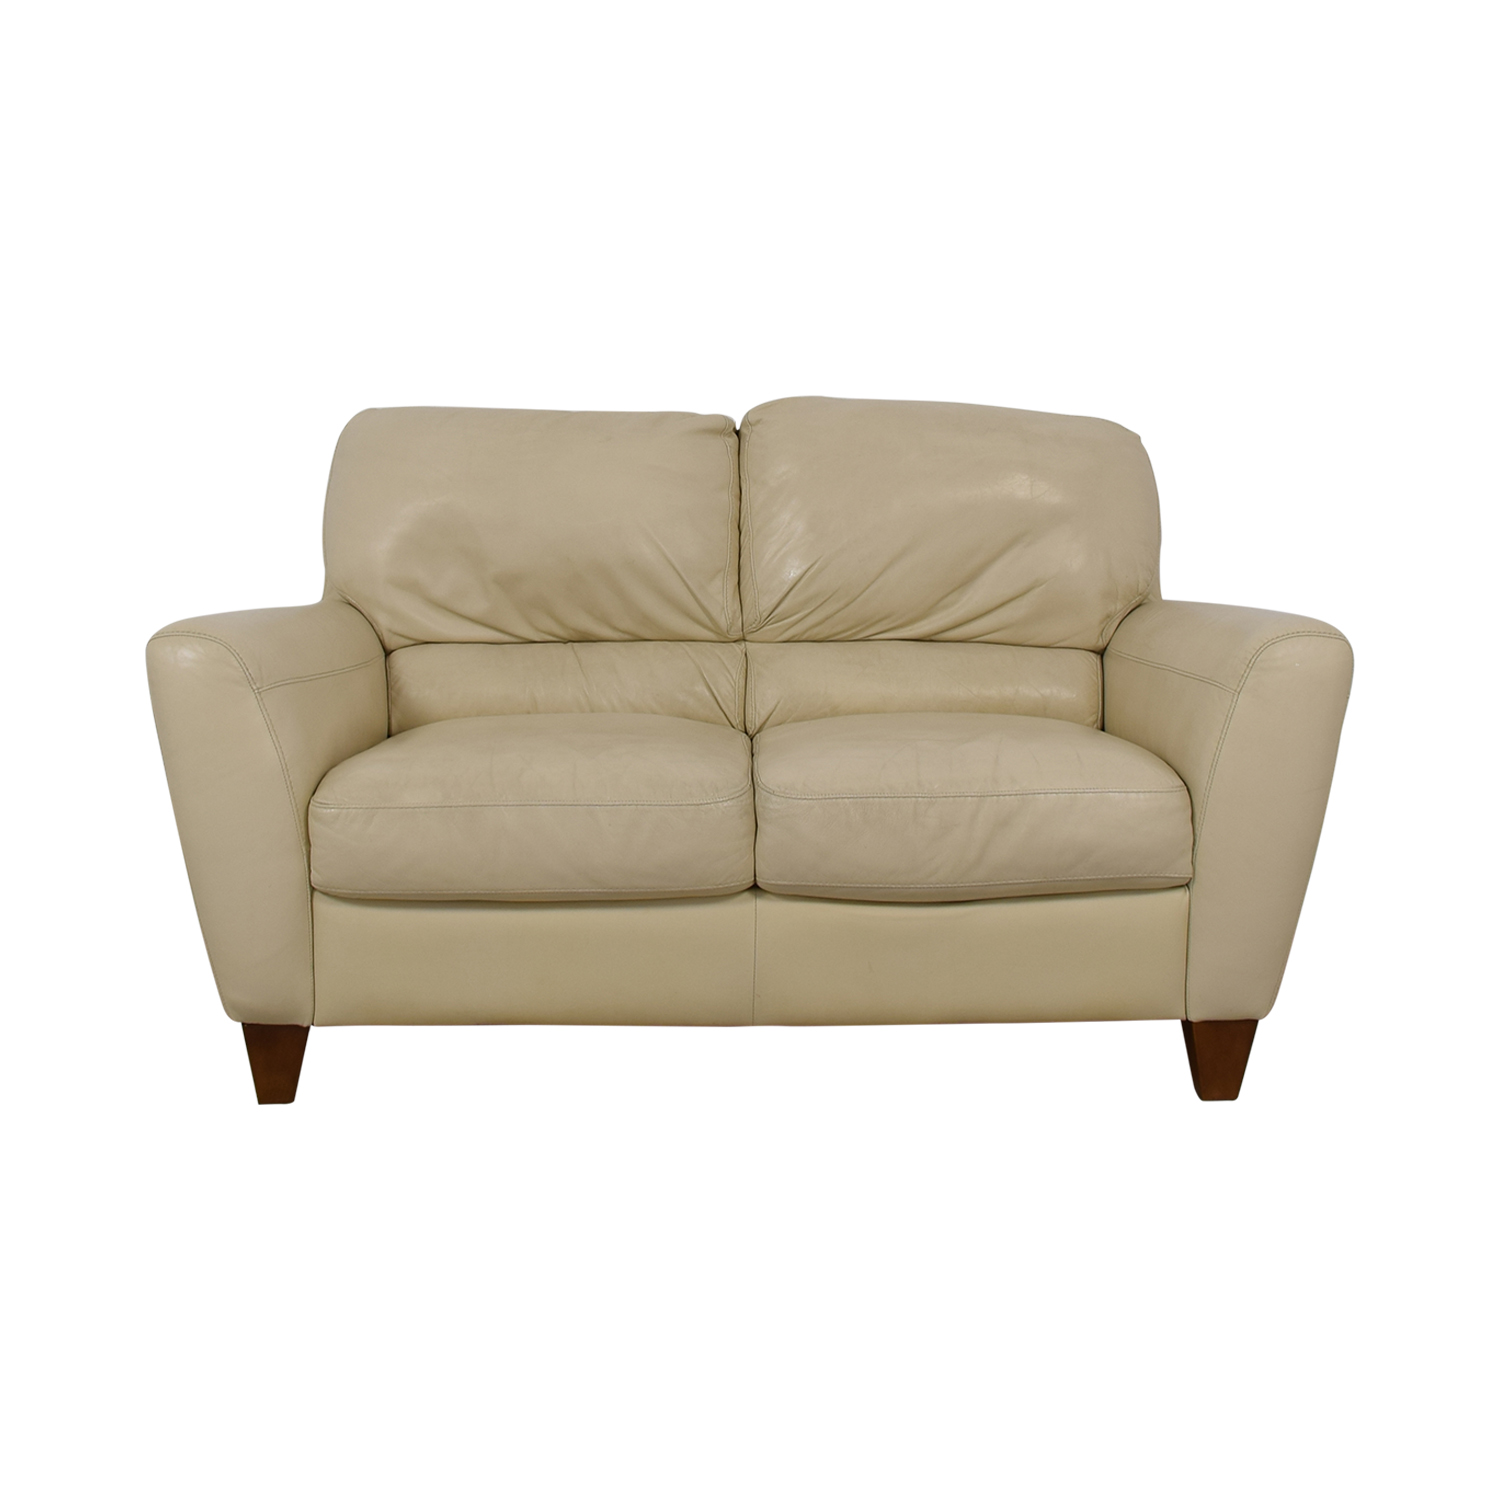 shop Macy's White Two-Cushion Loveseat Macy's